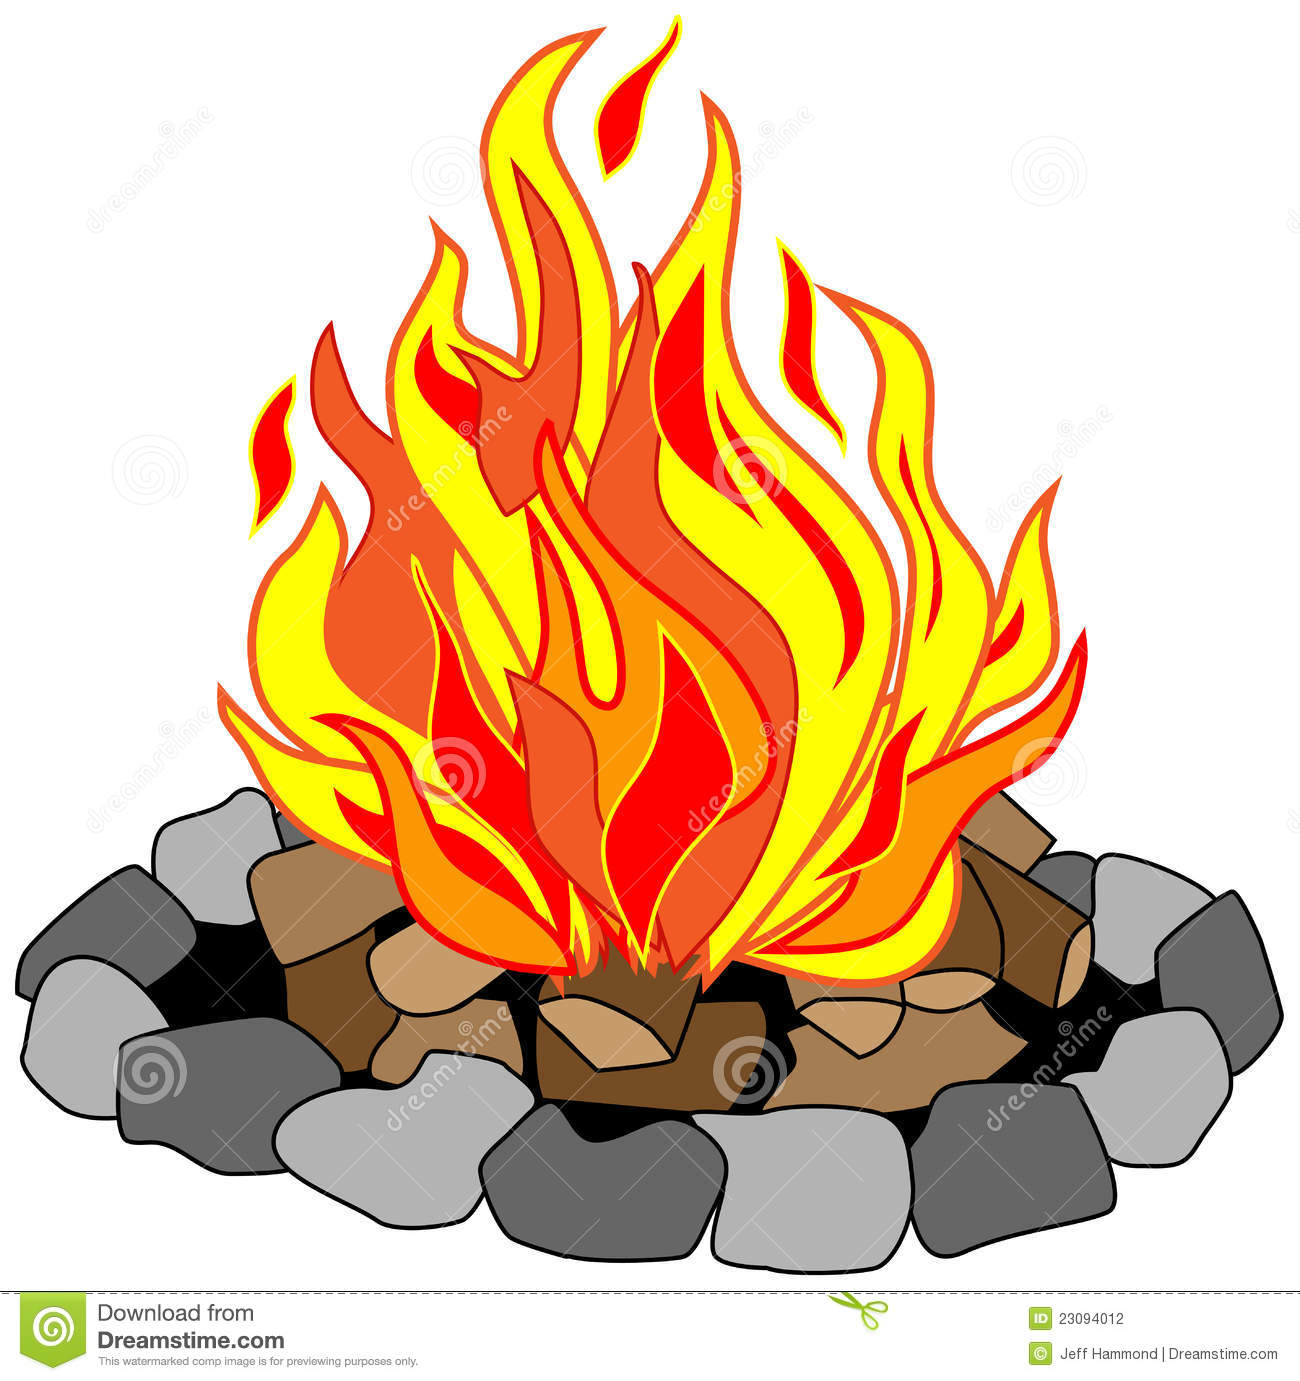 16351 Fire free clipart.